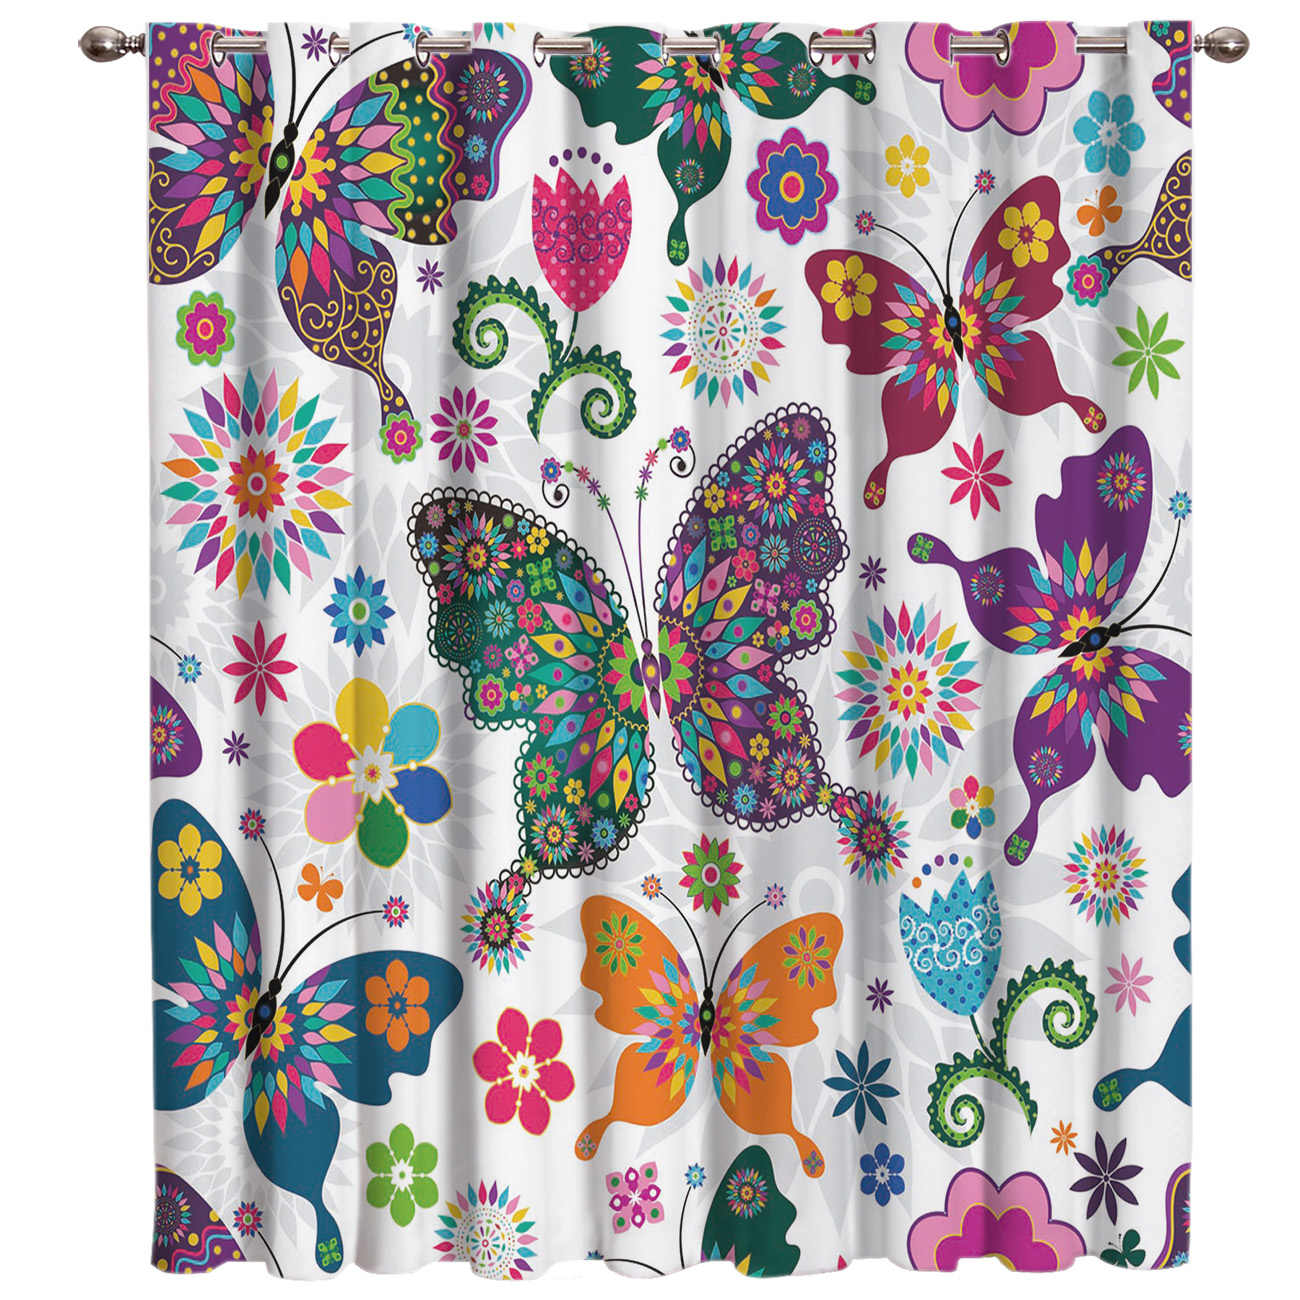 Butterfly and Flower Floral Window Curtains Dark Window Blinds Living Room Blackout Kitchen Indoor Fabric Kids Curtain Panels